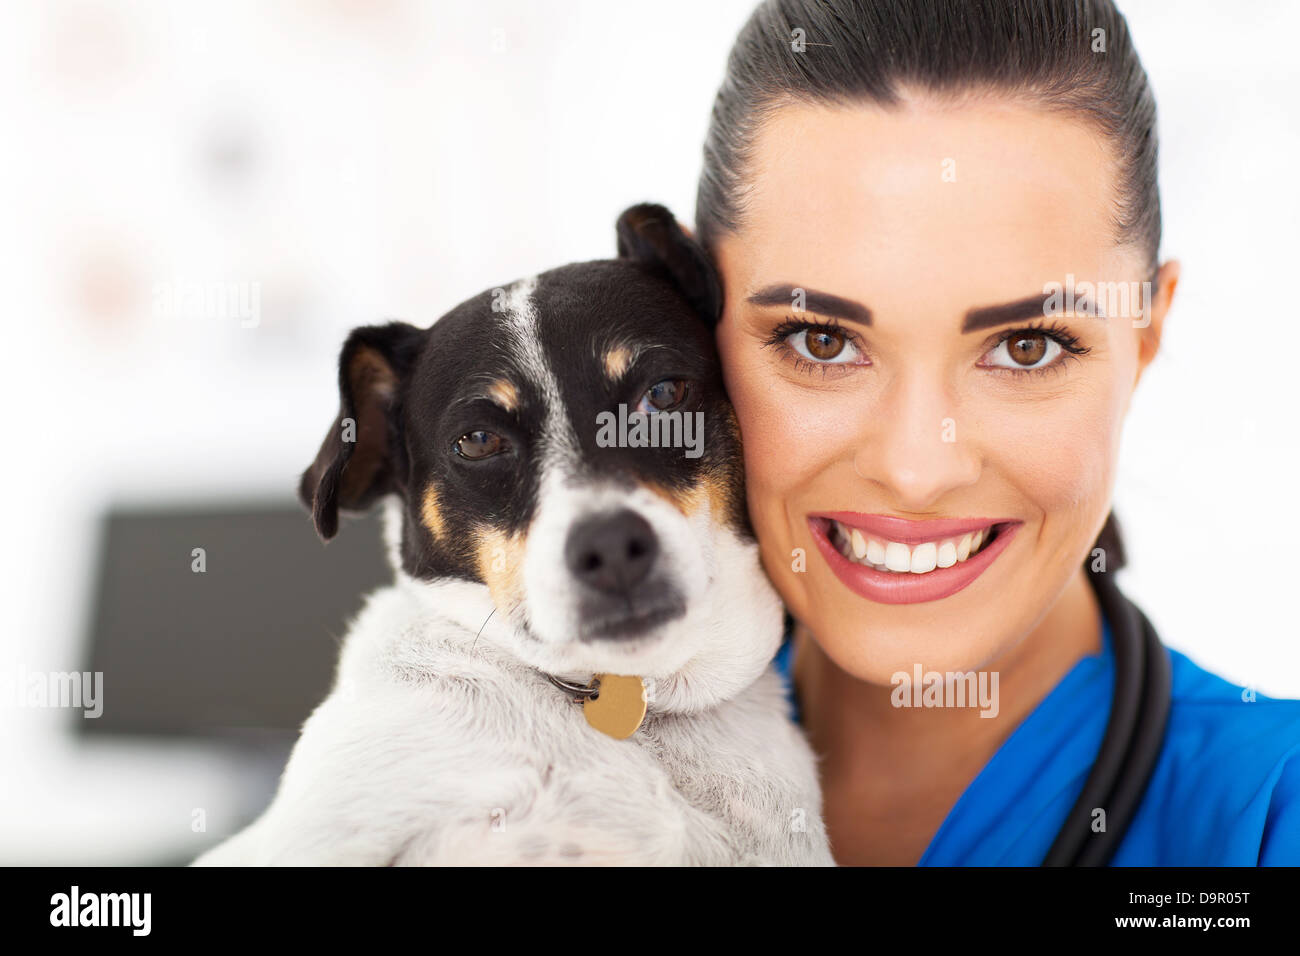 caring female vet holding a dog closeup portrait - Stock Image